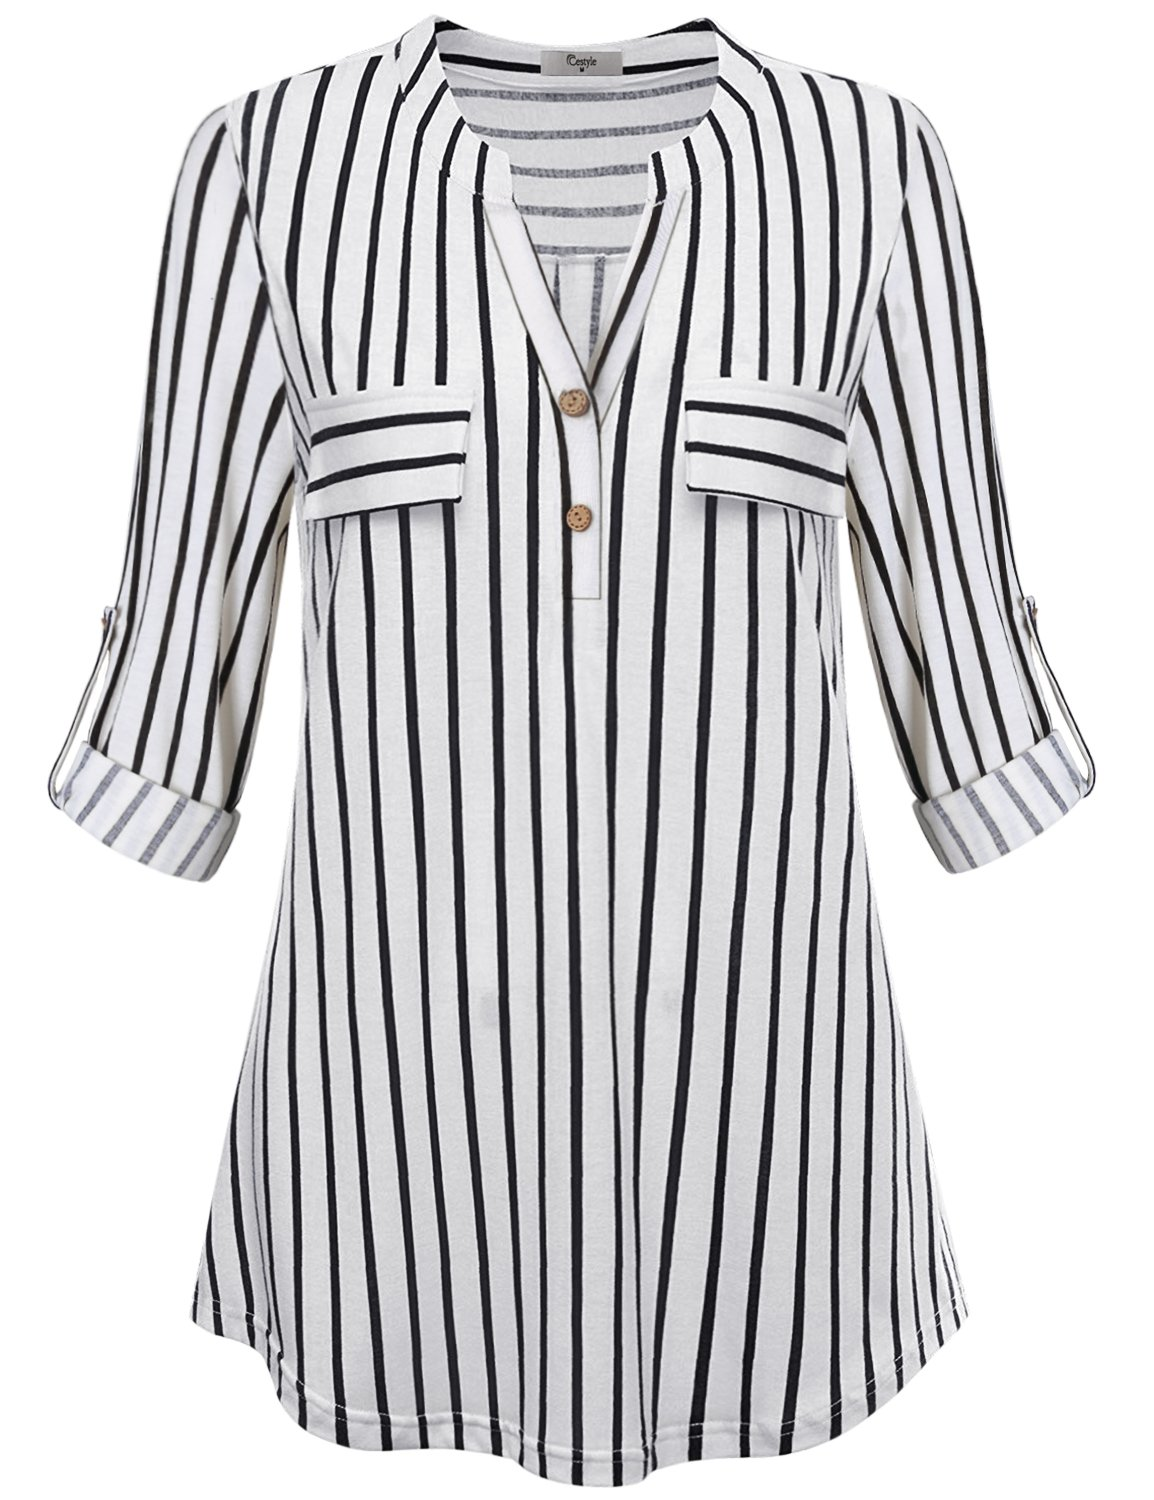 Cestyle Business Casual Tops for Women, Striped Shirt Fall Blouse Roll Sleeve Notch V Neck Rounded Hem Soft Knit Plus Size Elegant Wear Maternity Tunic Black Stripes XX-Large